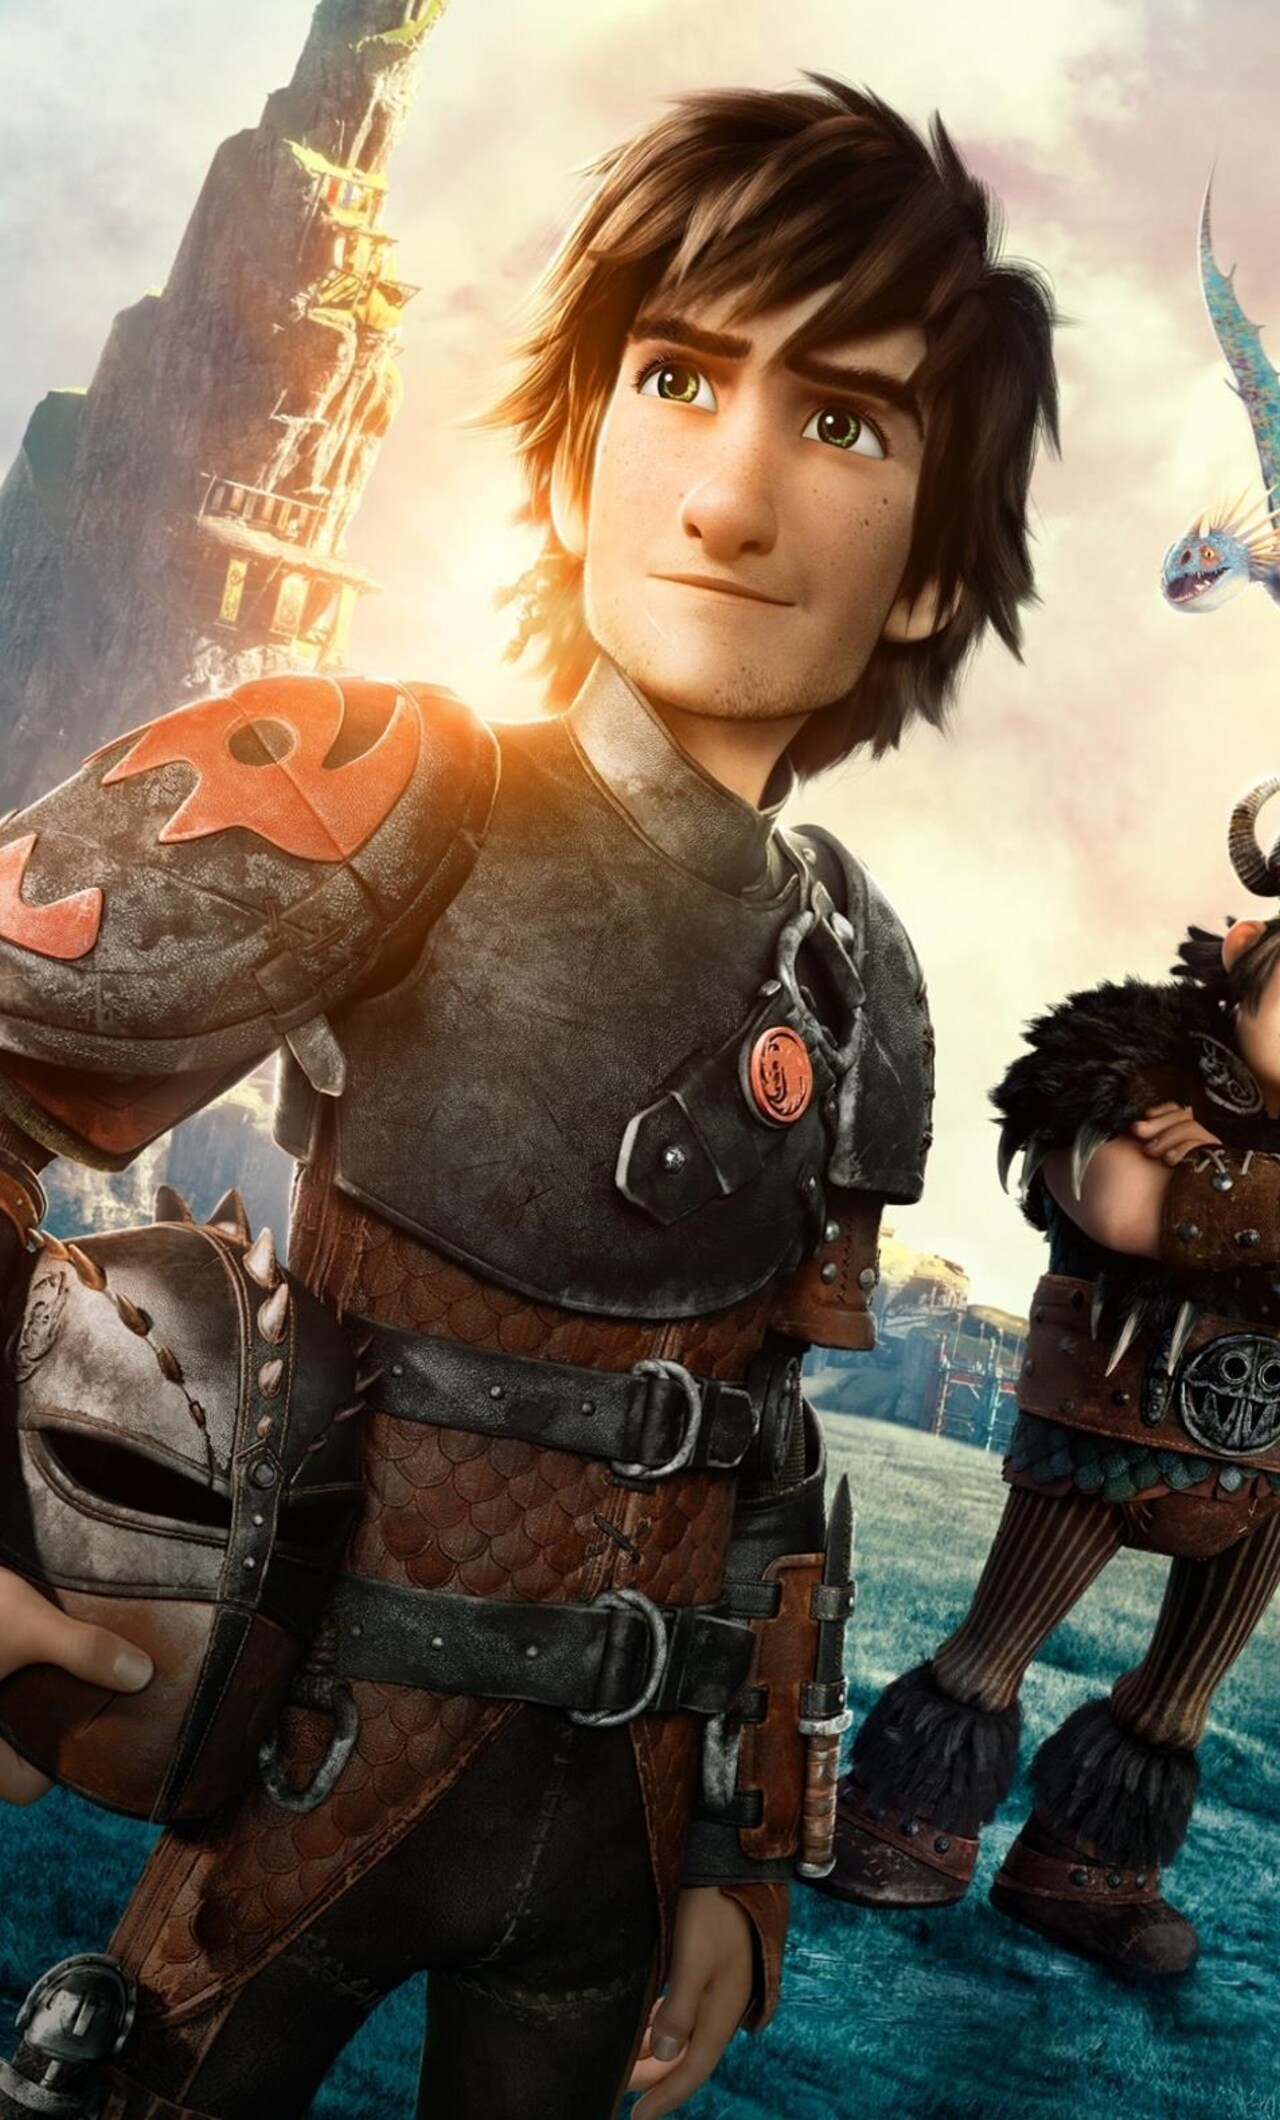 1280x2120 How To Train Your Dragon 2 Movie Iphone 6 Hd 4k